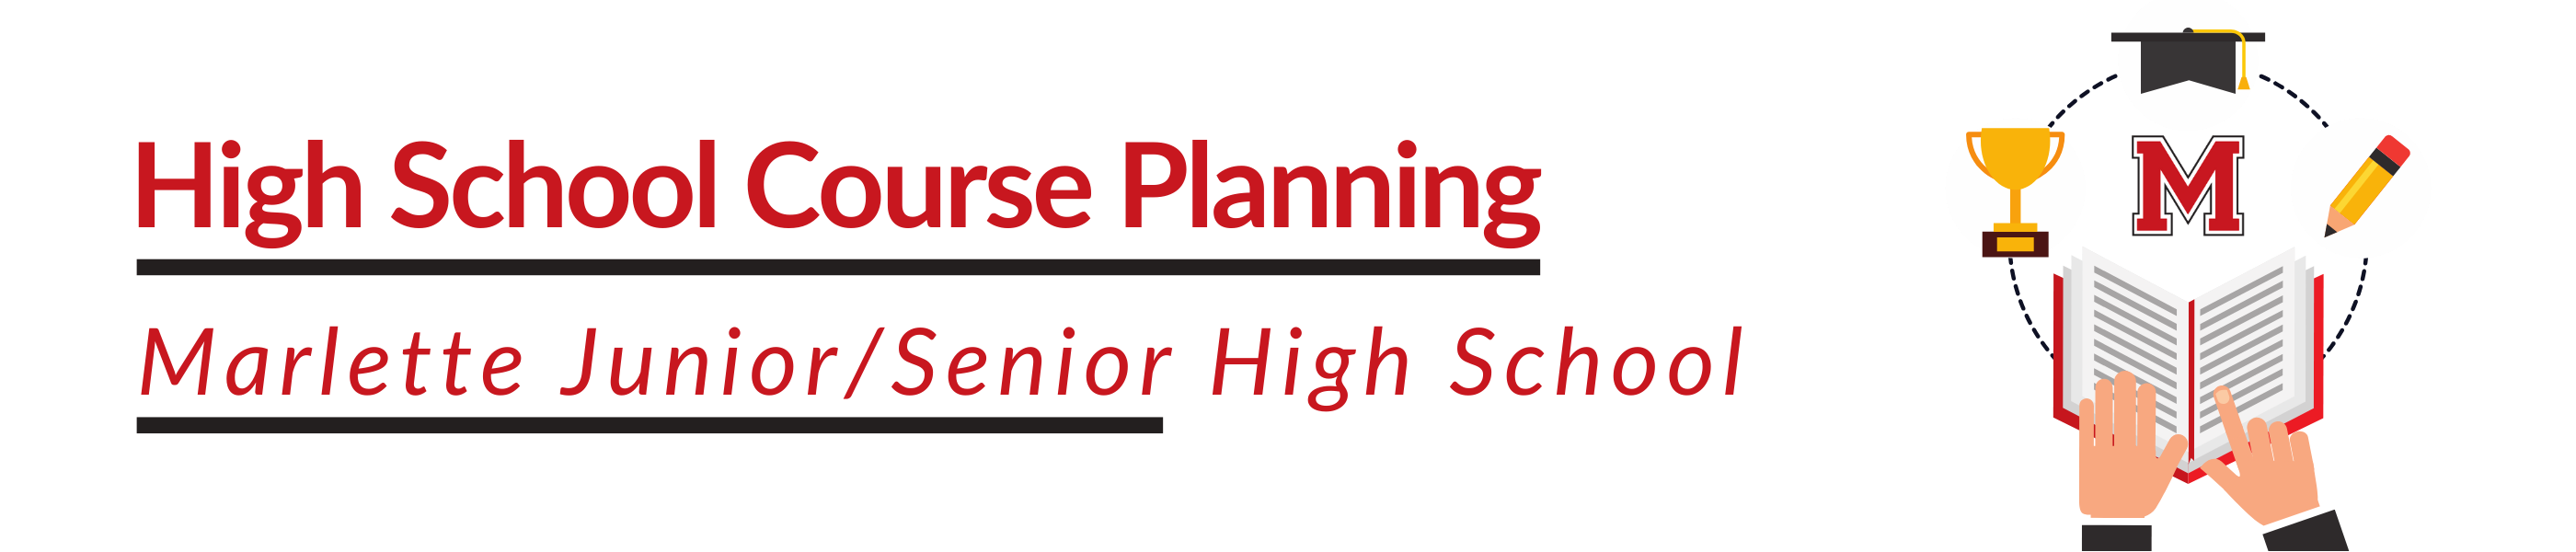 High School Course Planning